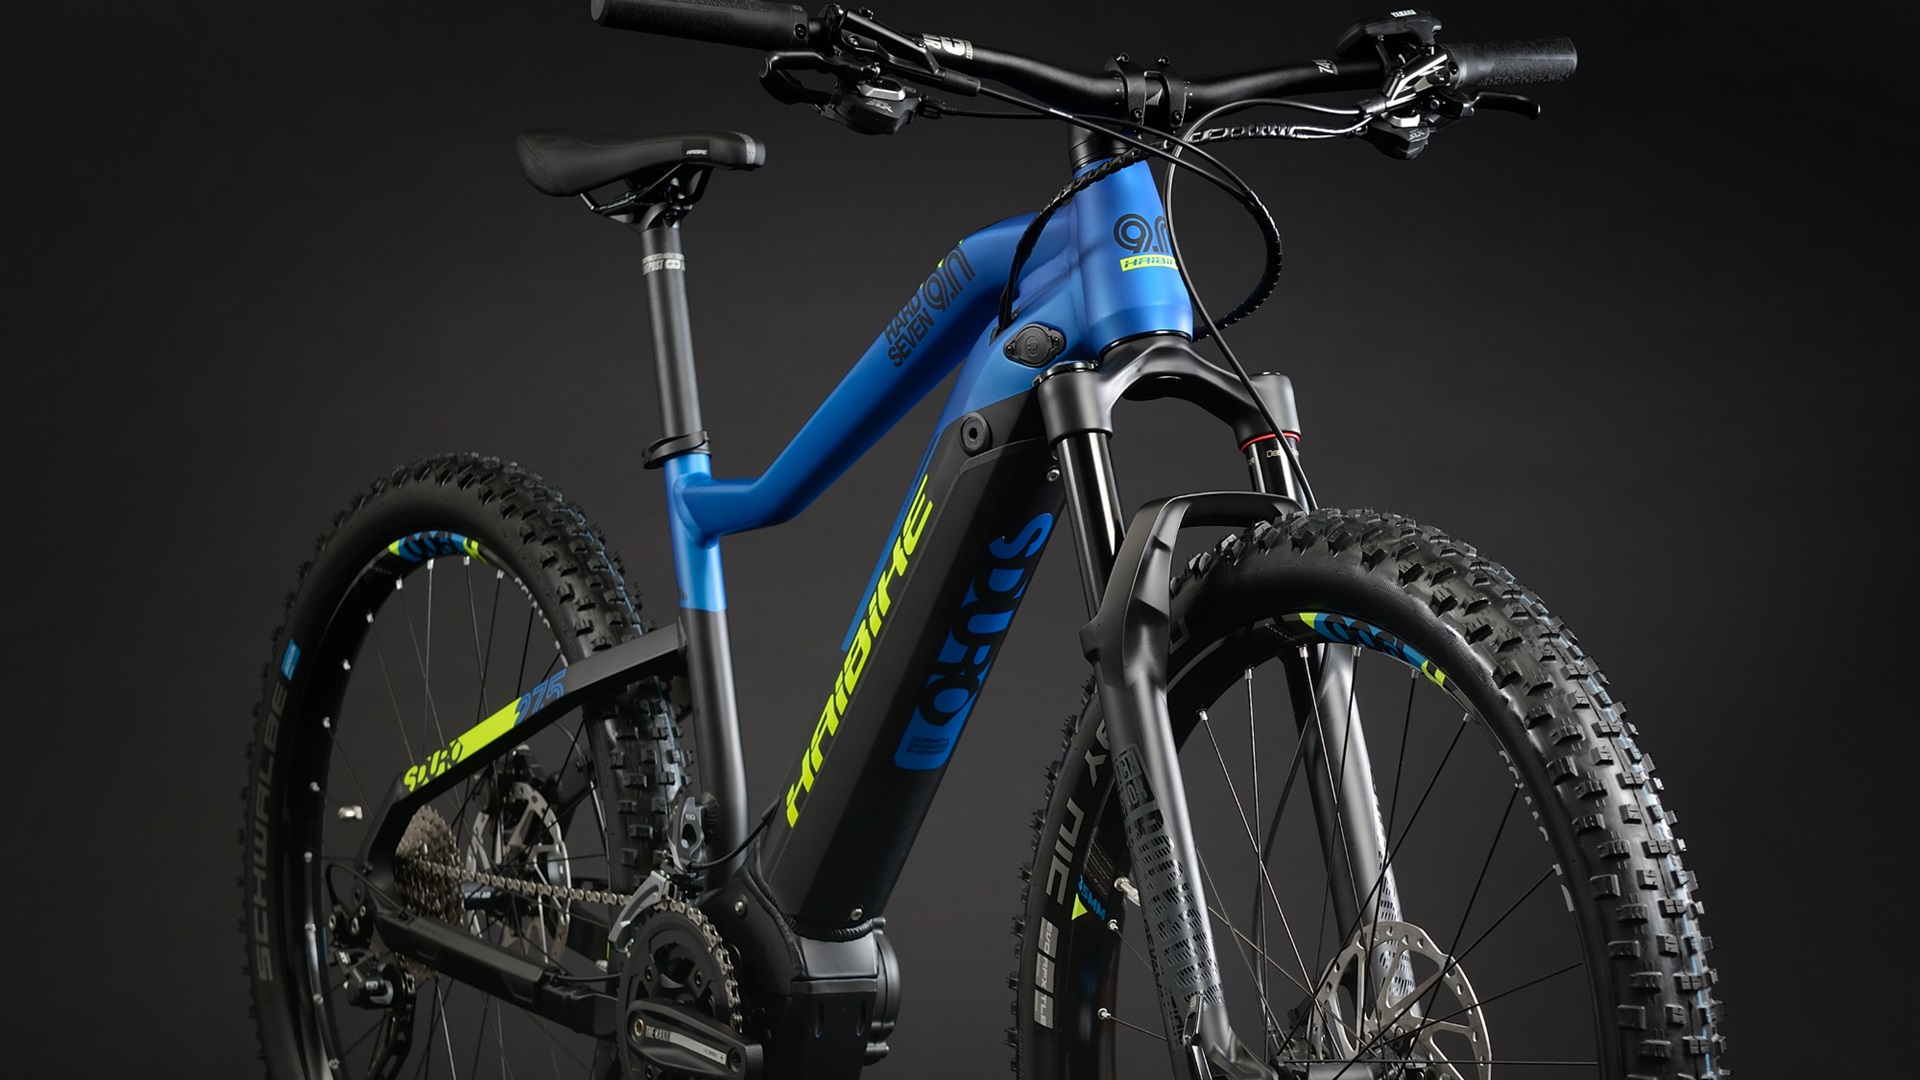 Haibike Sduro Hardseven-Sporty mountain bike for everyday life